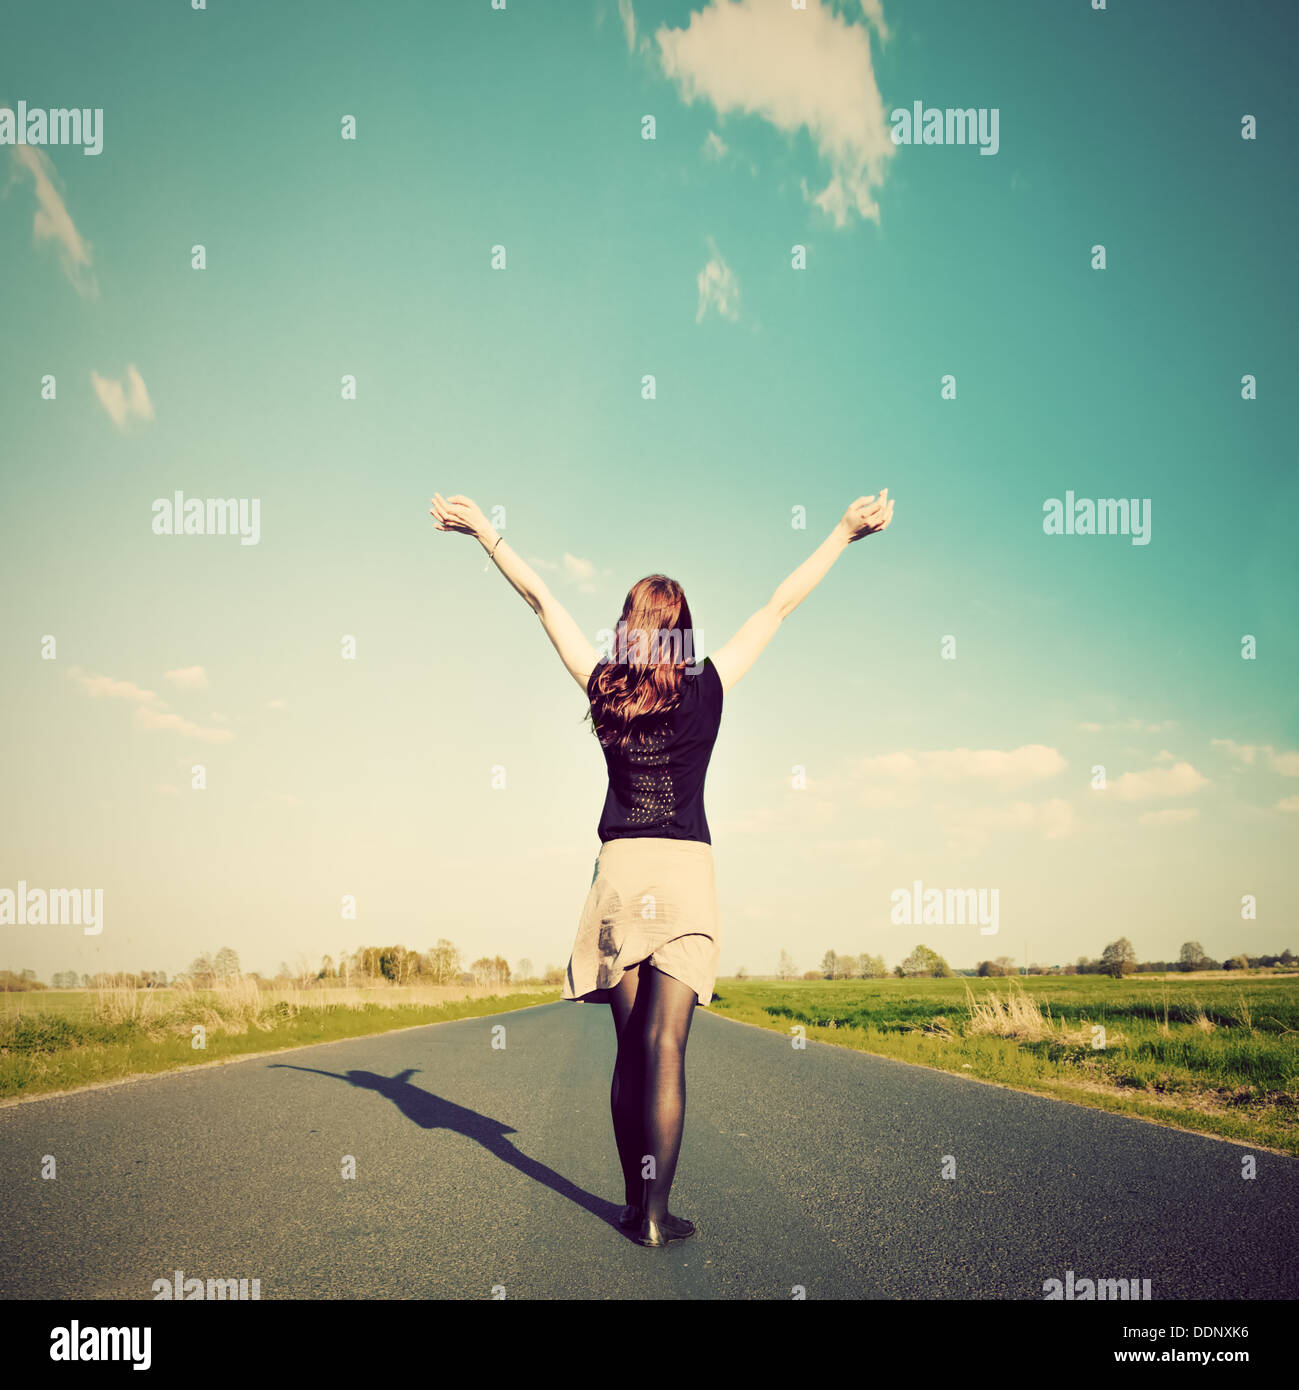 Happy woman standing with hands up sur route droite face à soleil. Avenir / liberté / espoir / concept de réussite Photo Stock